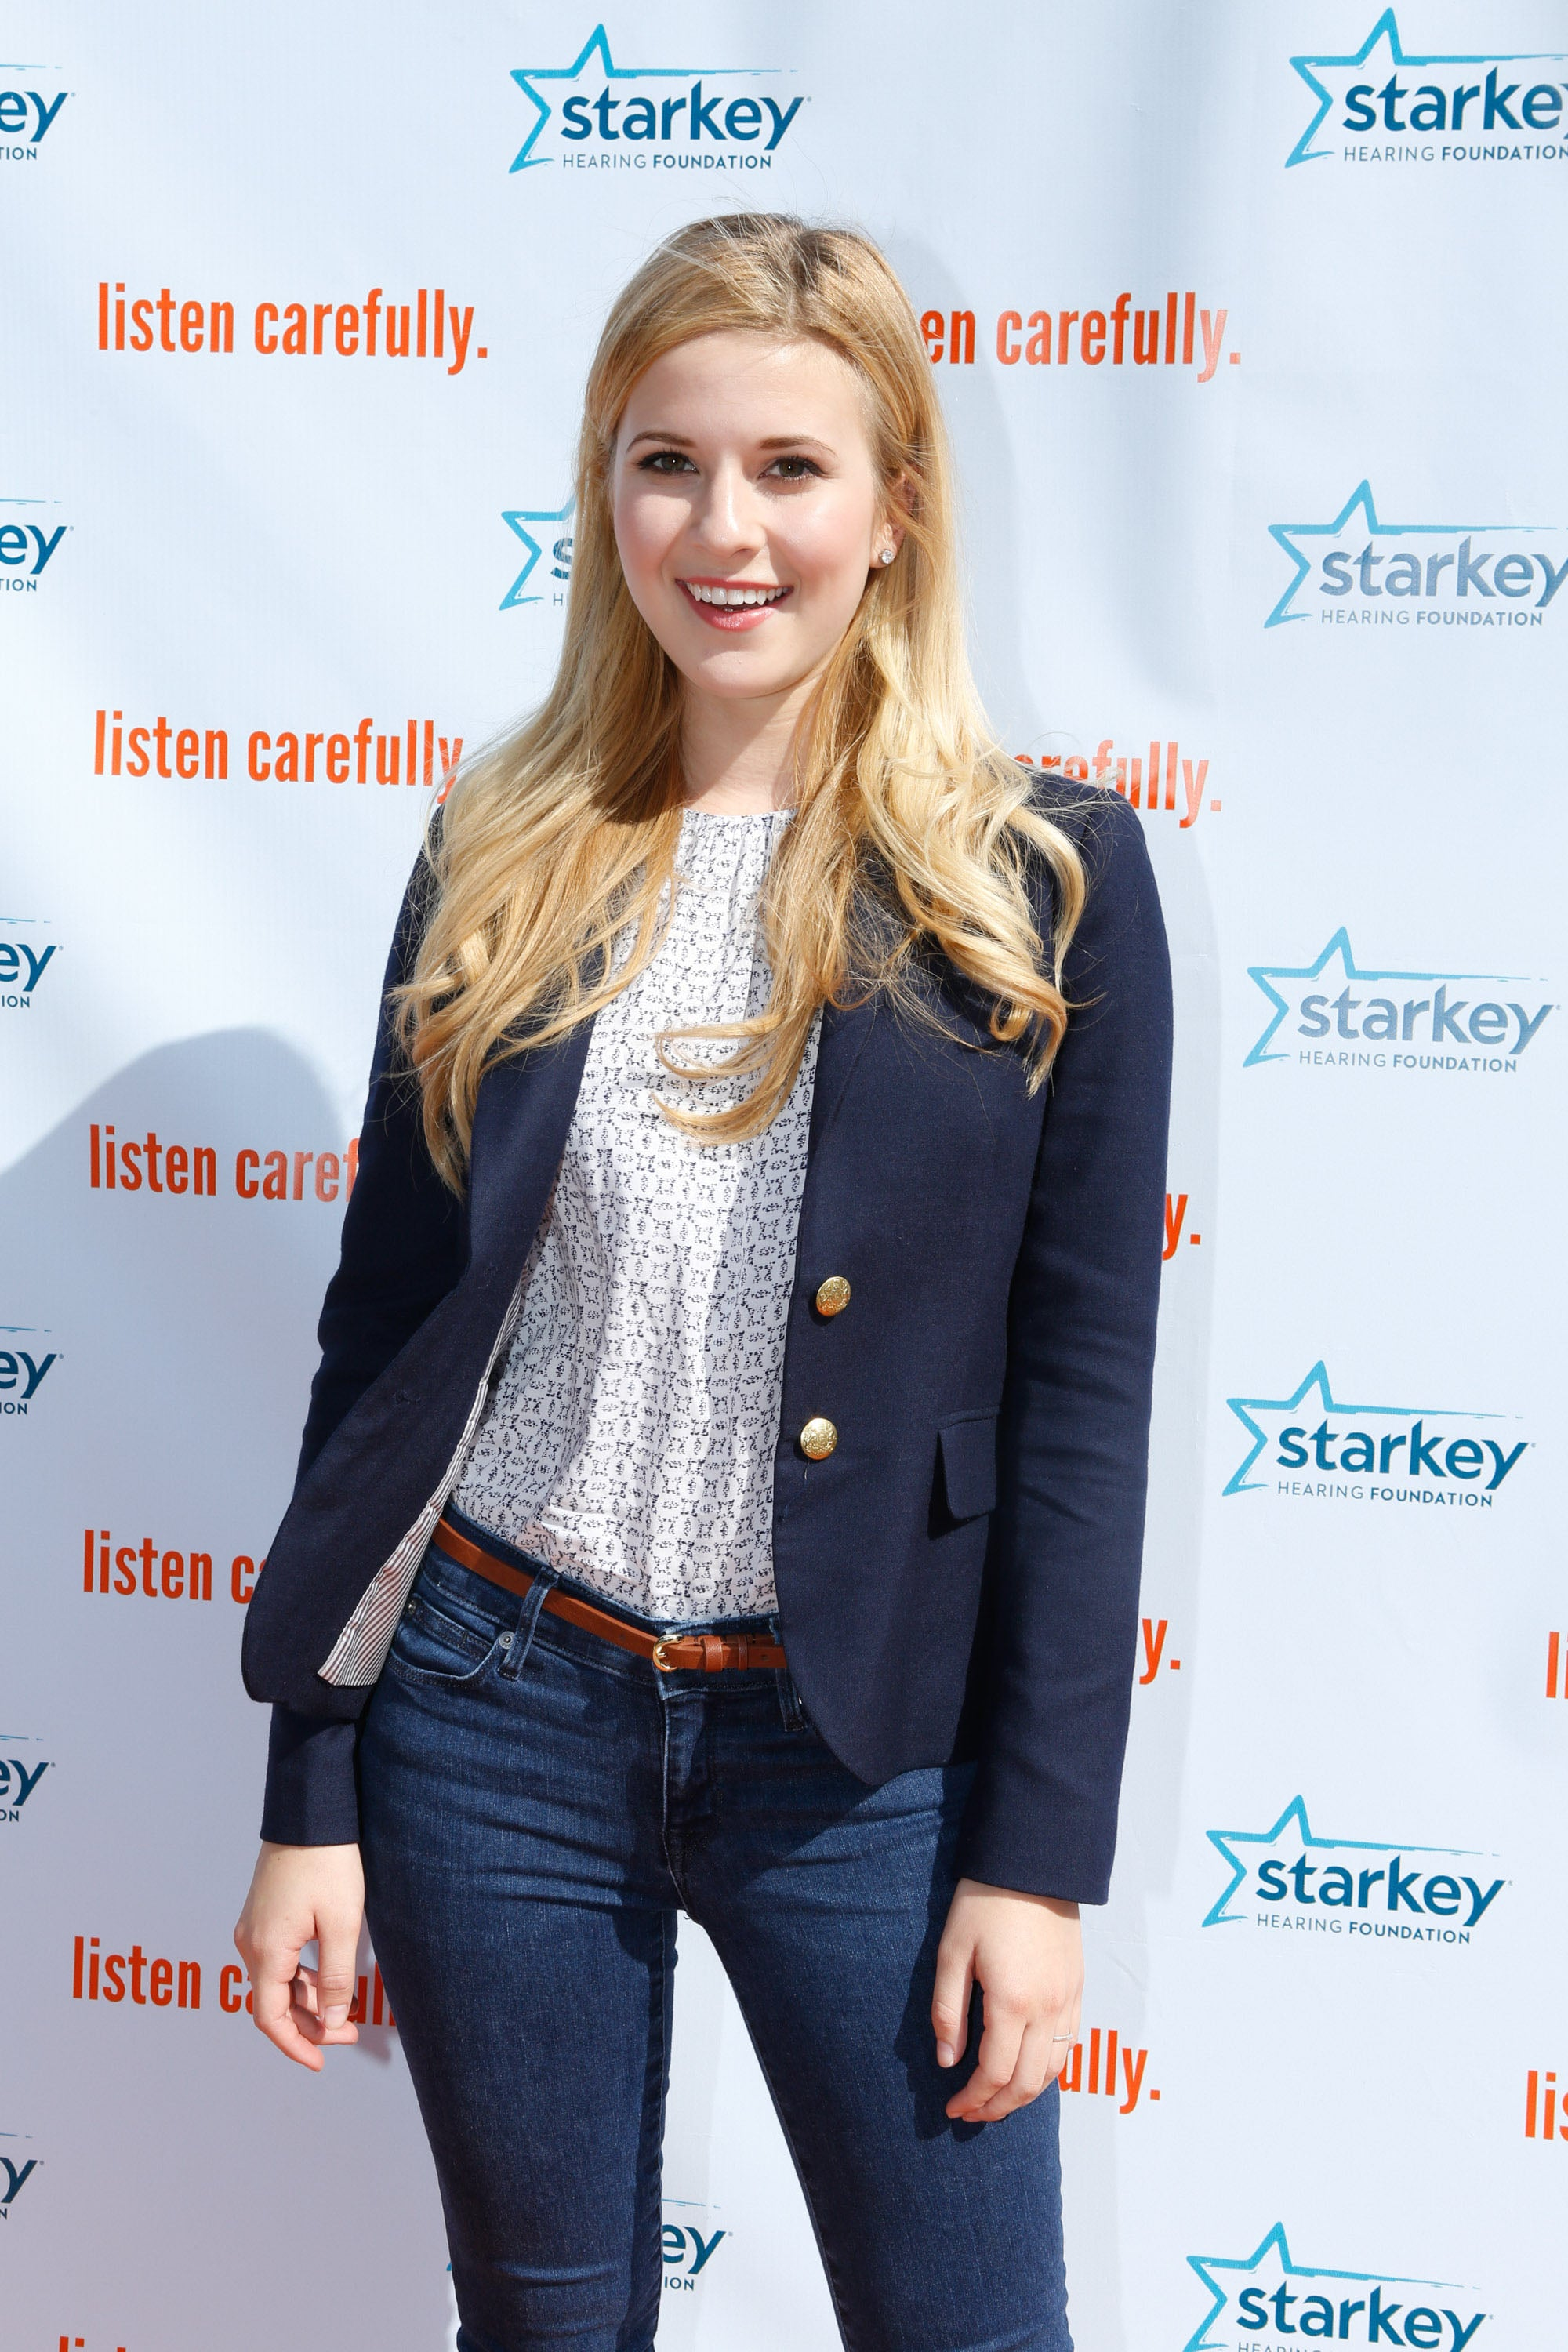 IRVINE, CA - APRIL 15:  Actor Caroline Sunshine attends the Starkey Hearing Foundation's Listen Carefully Concert With Aloe Blacc at Woodbridge High School on April 15, 2015 in Irvine, California.  (Photo by Tiffany Rose/Getty Images for Starkey Hearing Foundation)